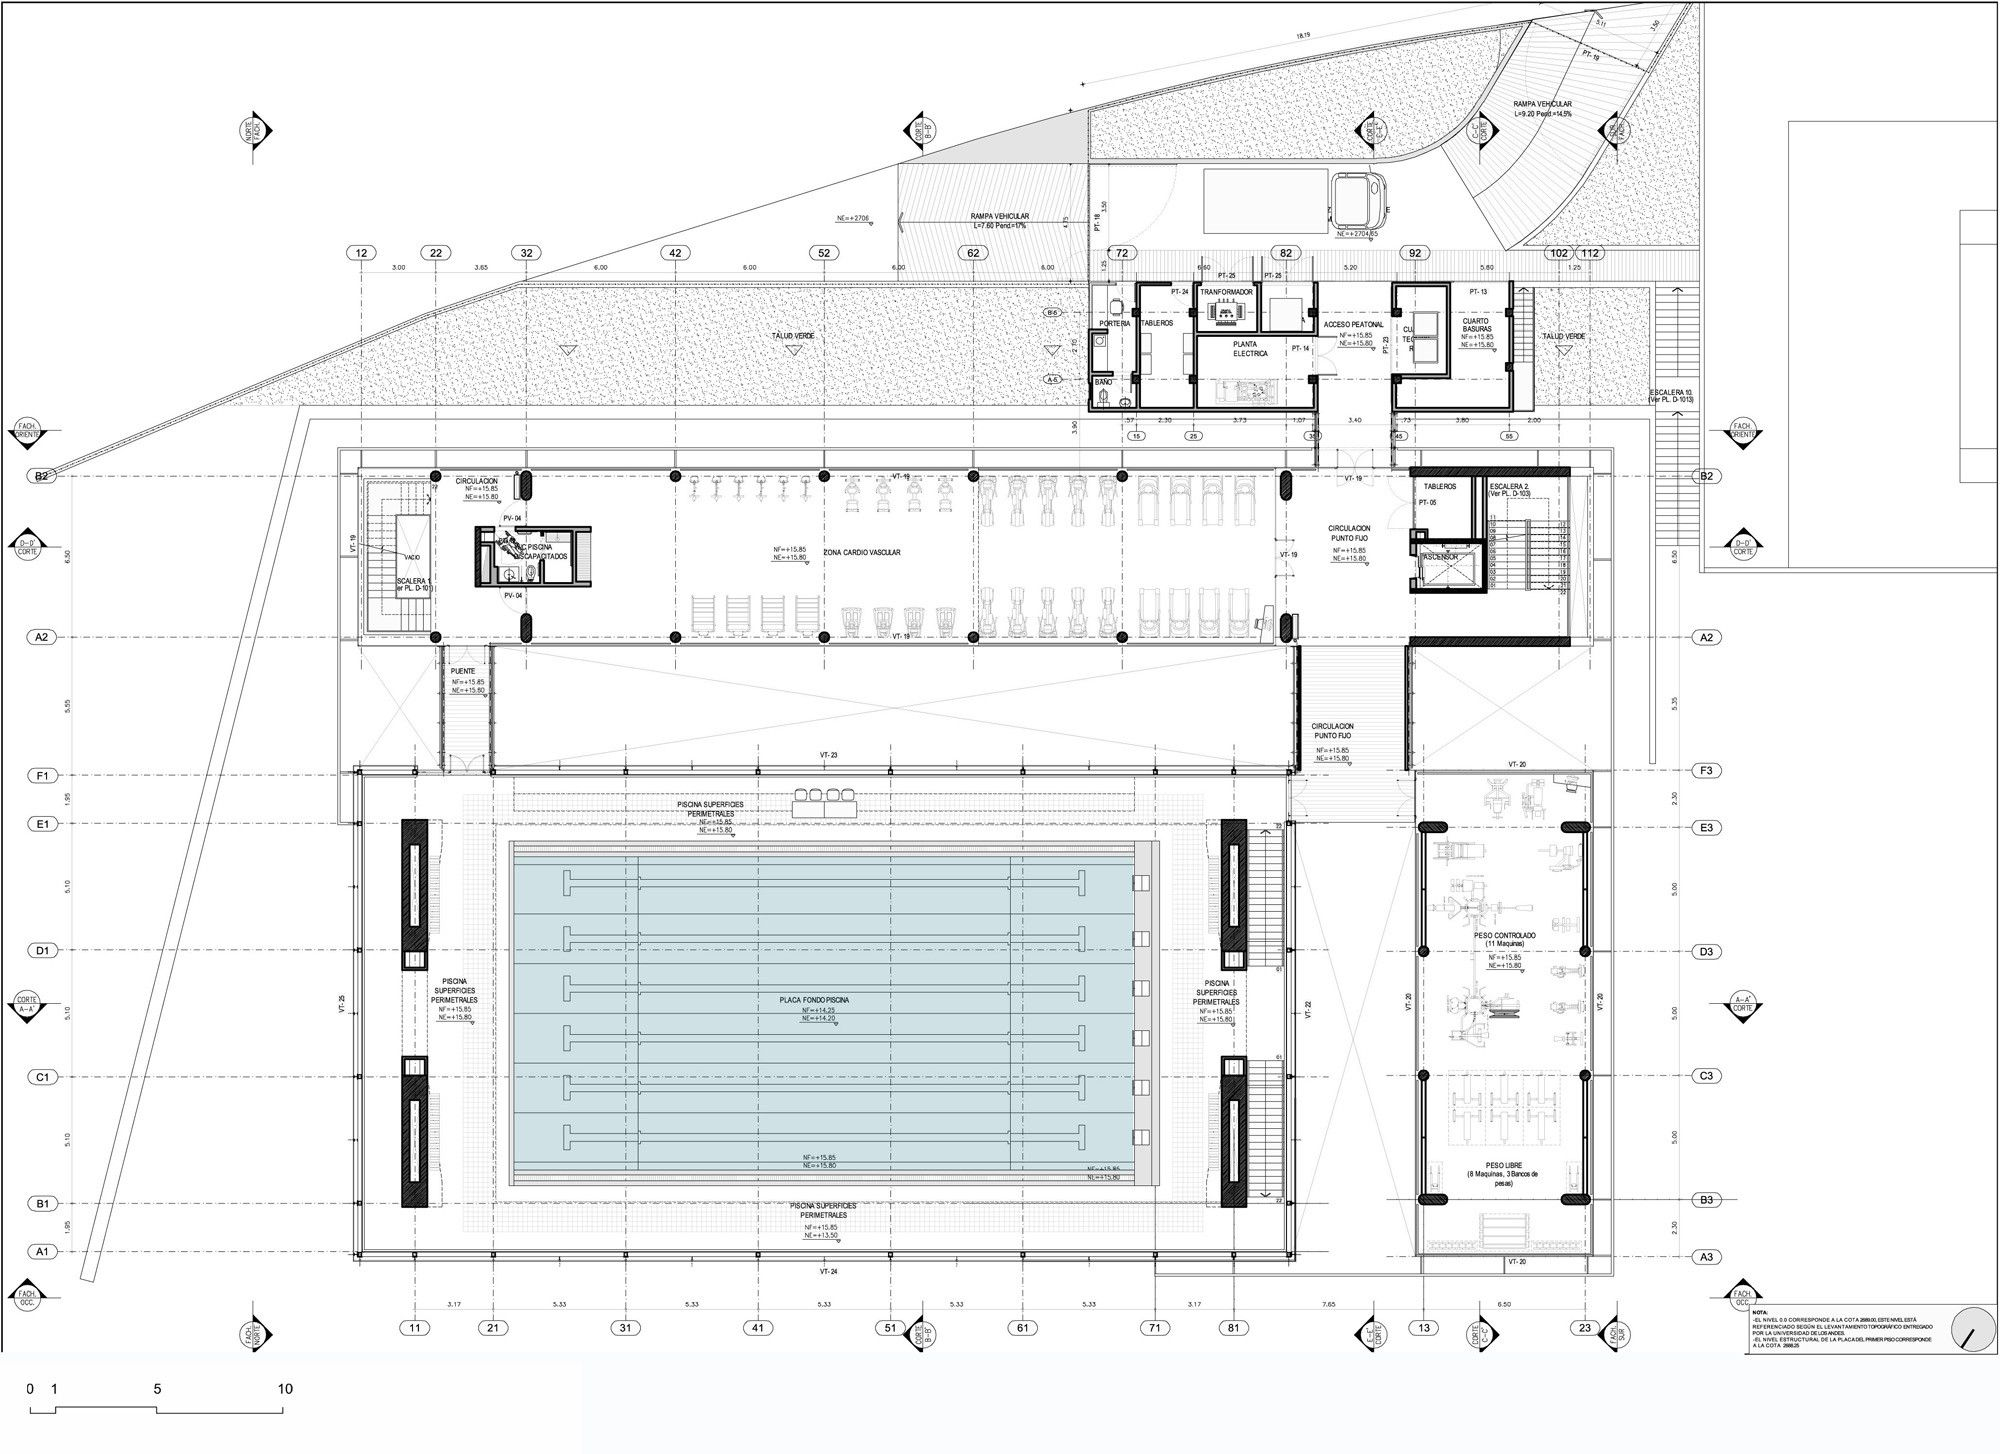 Gallery Of Universidad De Los Andes Sport Facilities Mgp Arquitectura Y Urbanismo 21 Swimming Pool Architecture Swimming Pool Plan Pool Design Plans